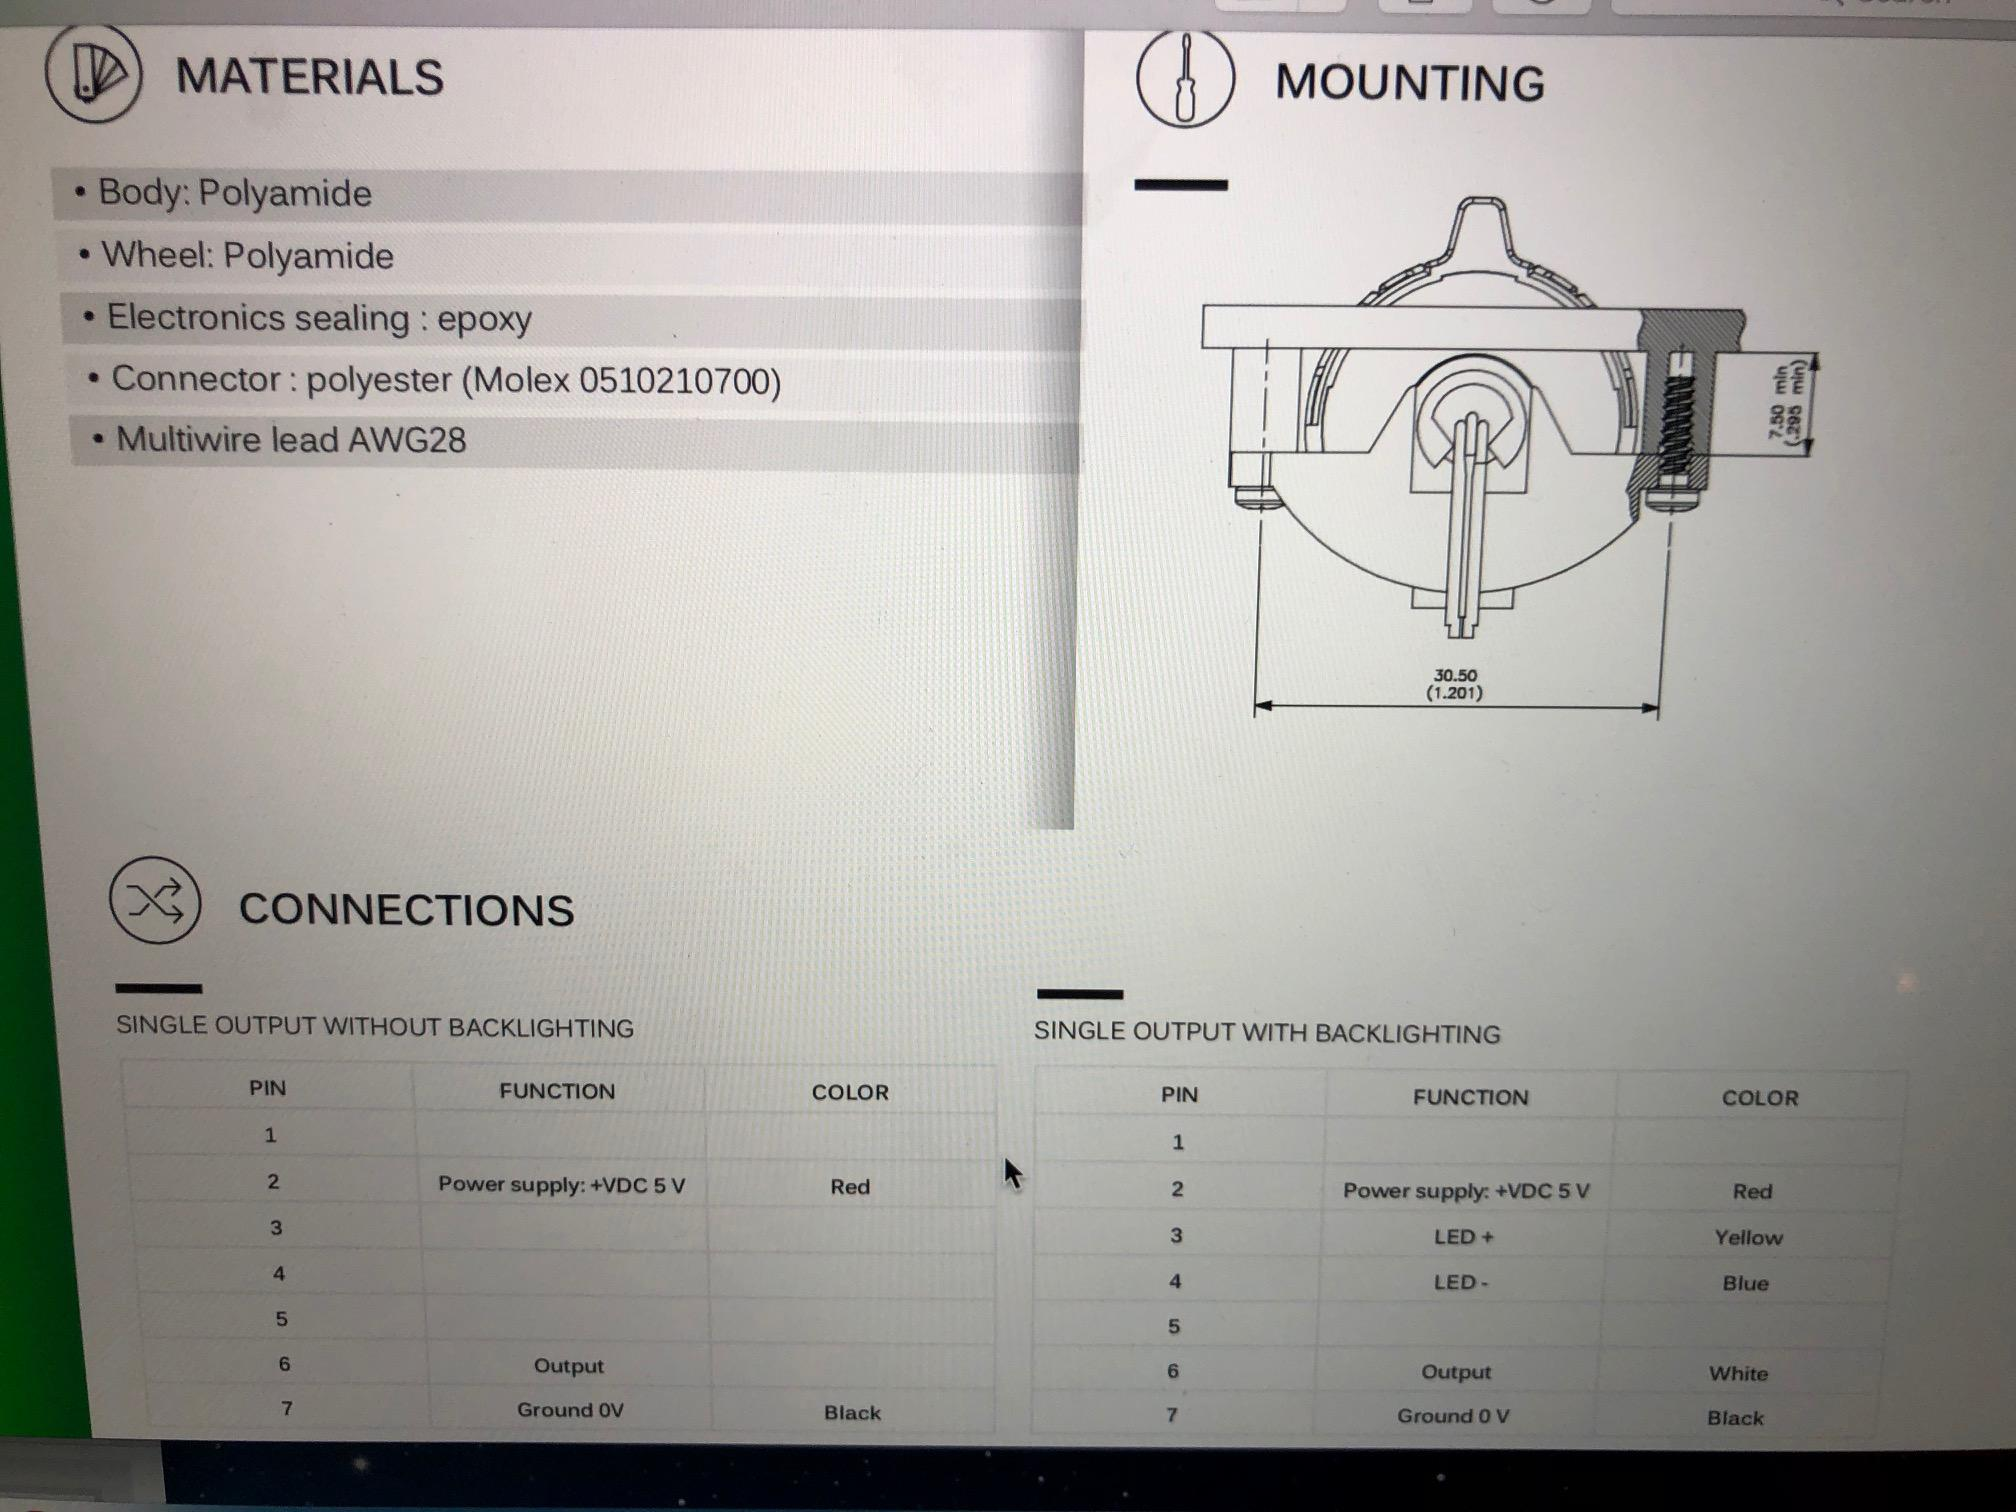 Hall Sensor Steering Wiring And Specs Ninebot Mini Segway Minipro Circuit Diagram Further 2 Way Switch On Img 0842